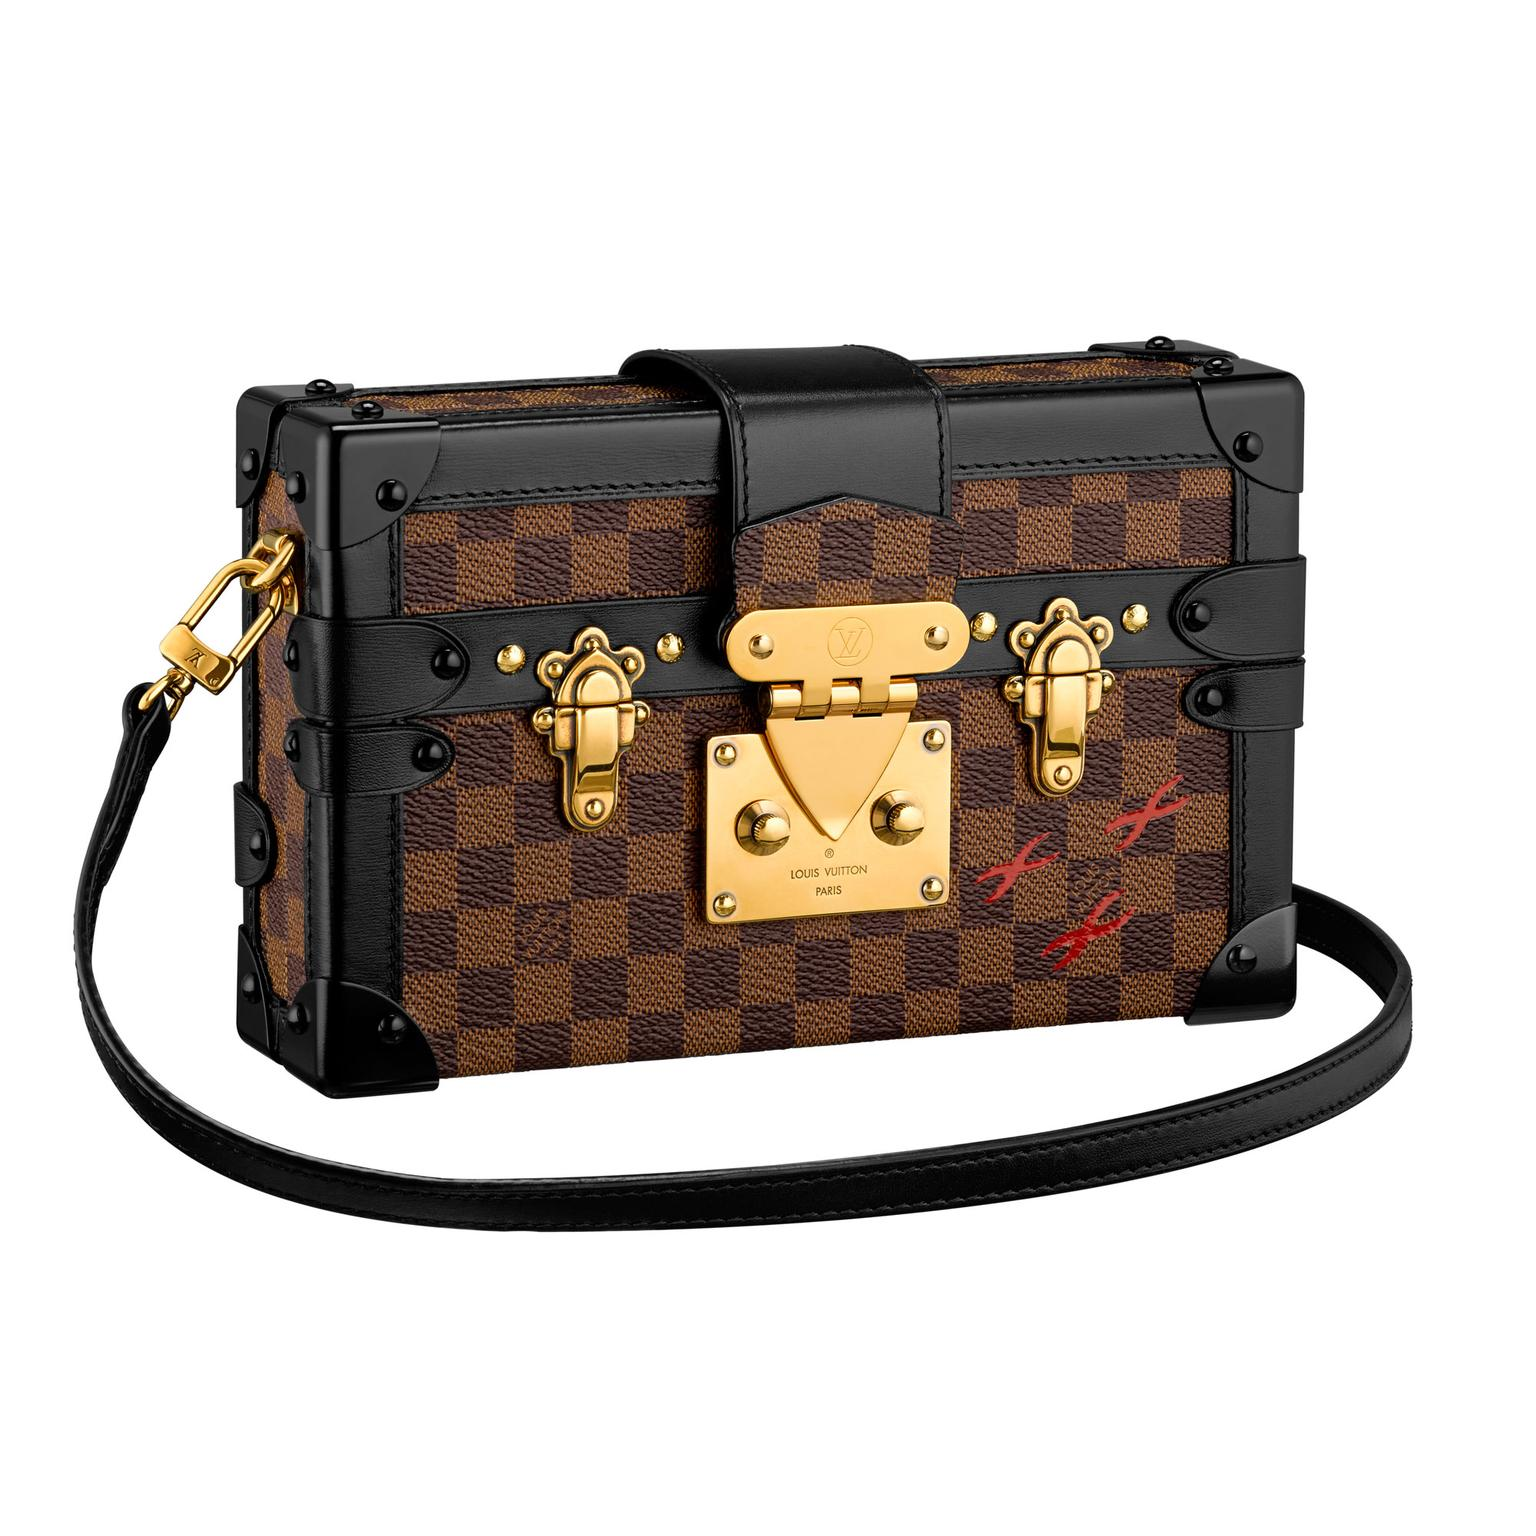 Louis Vuitton Petite Maille in Damier